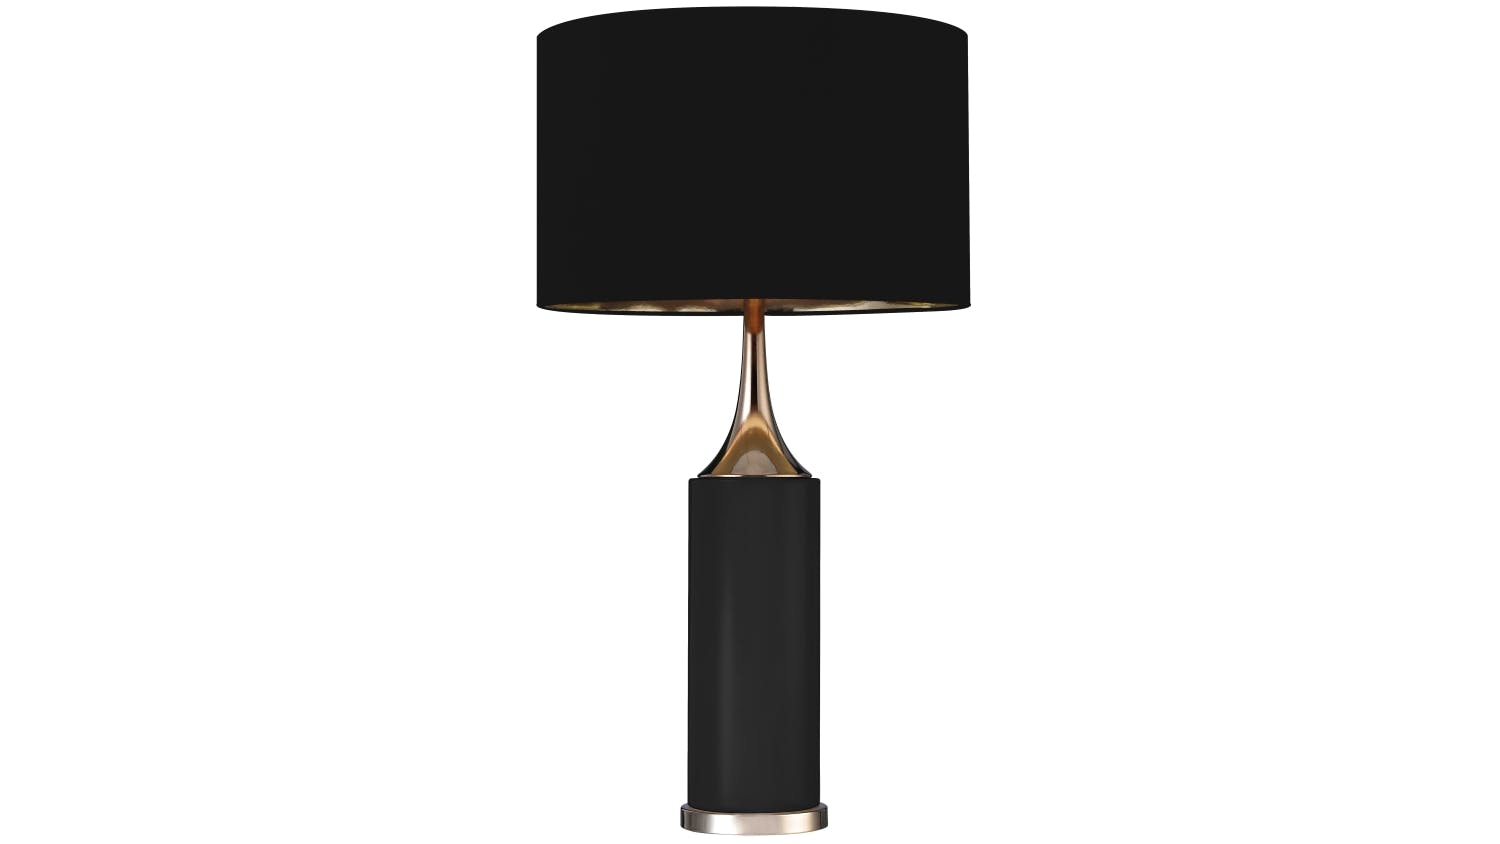 Aria table lamp black domayne aria table lamp black geotapseo Image collections